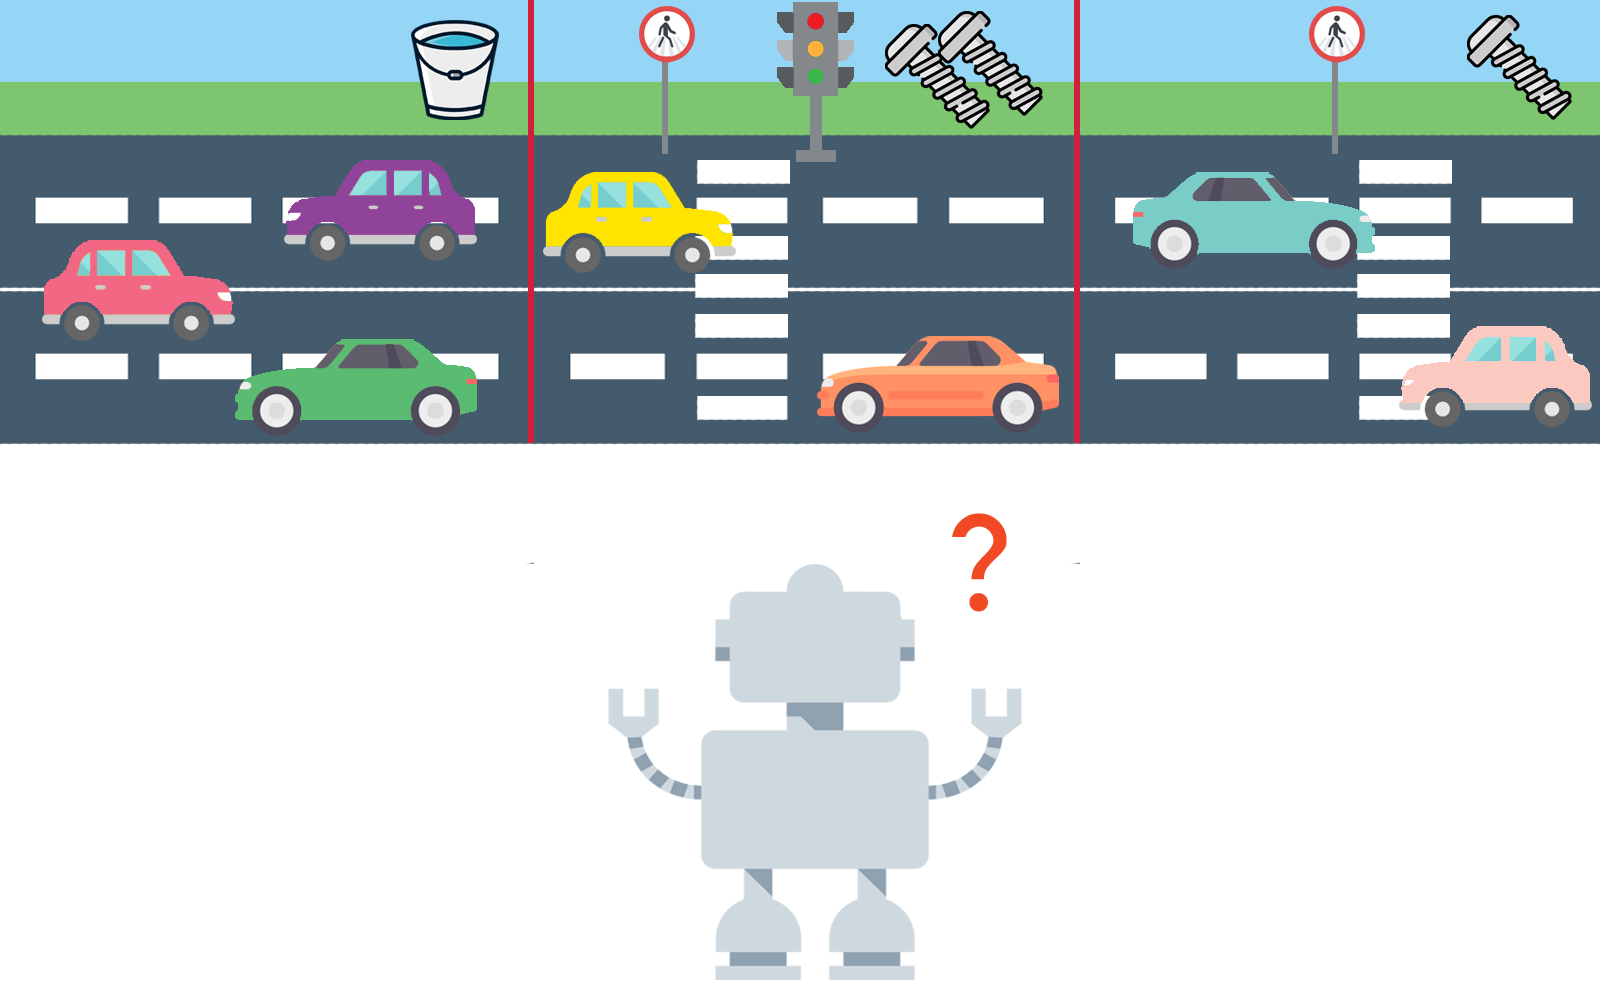 robot confused about where to cross the road